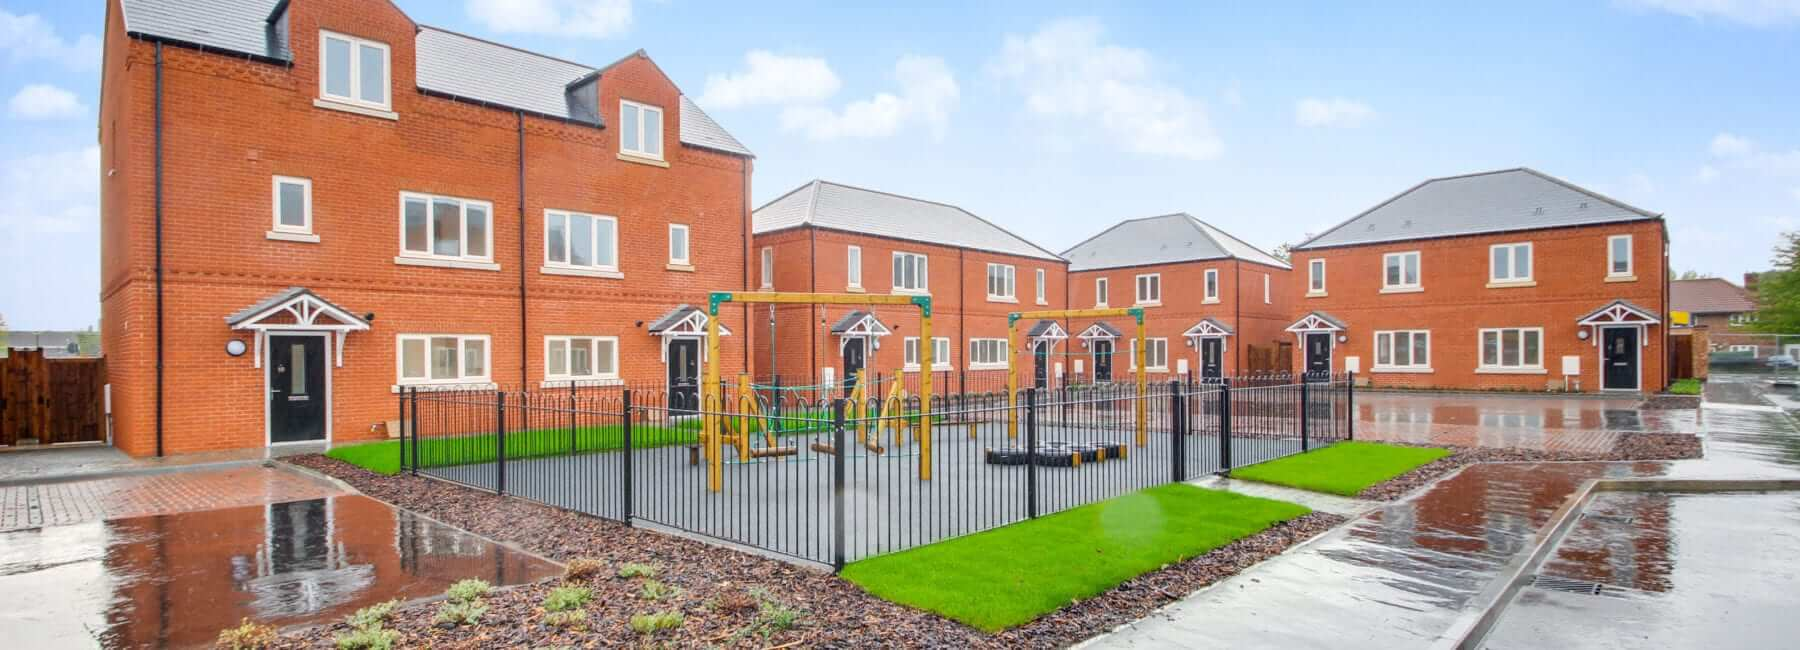 Good quality affordable homes